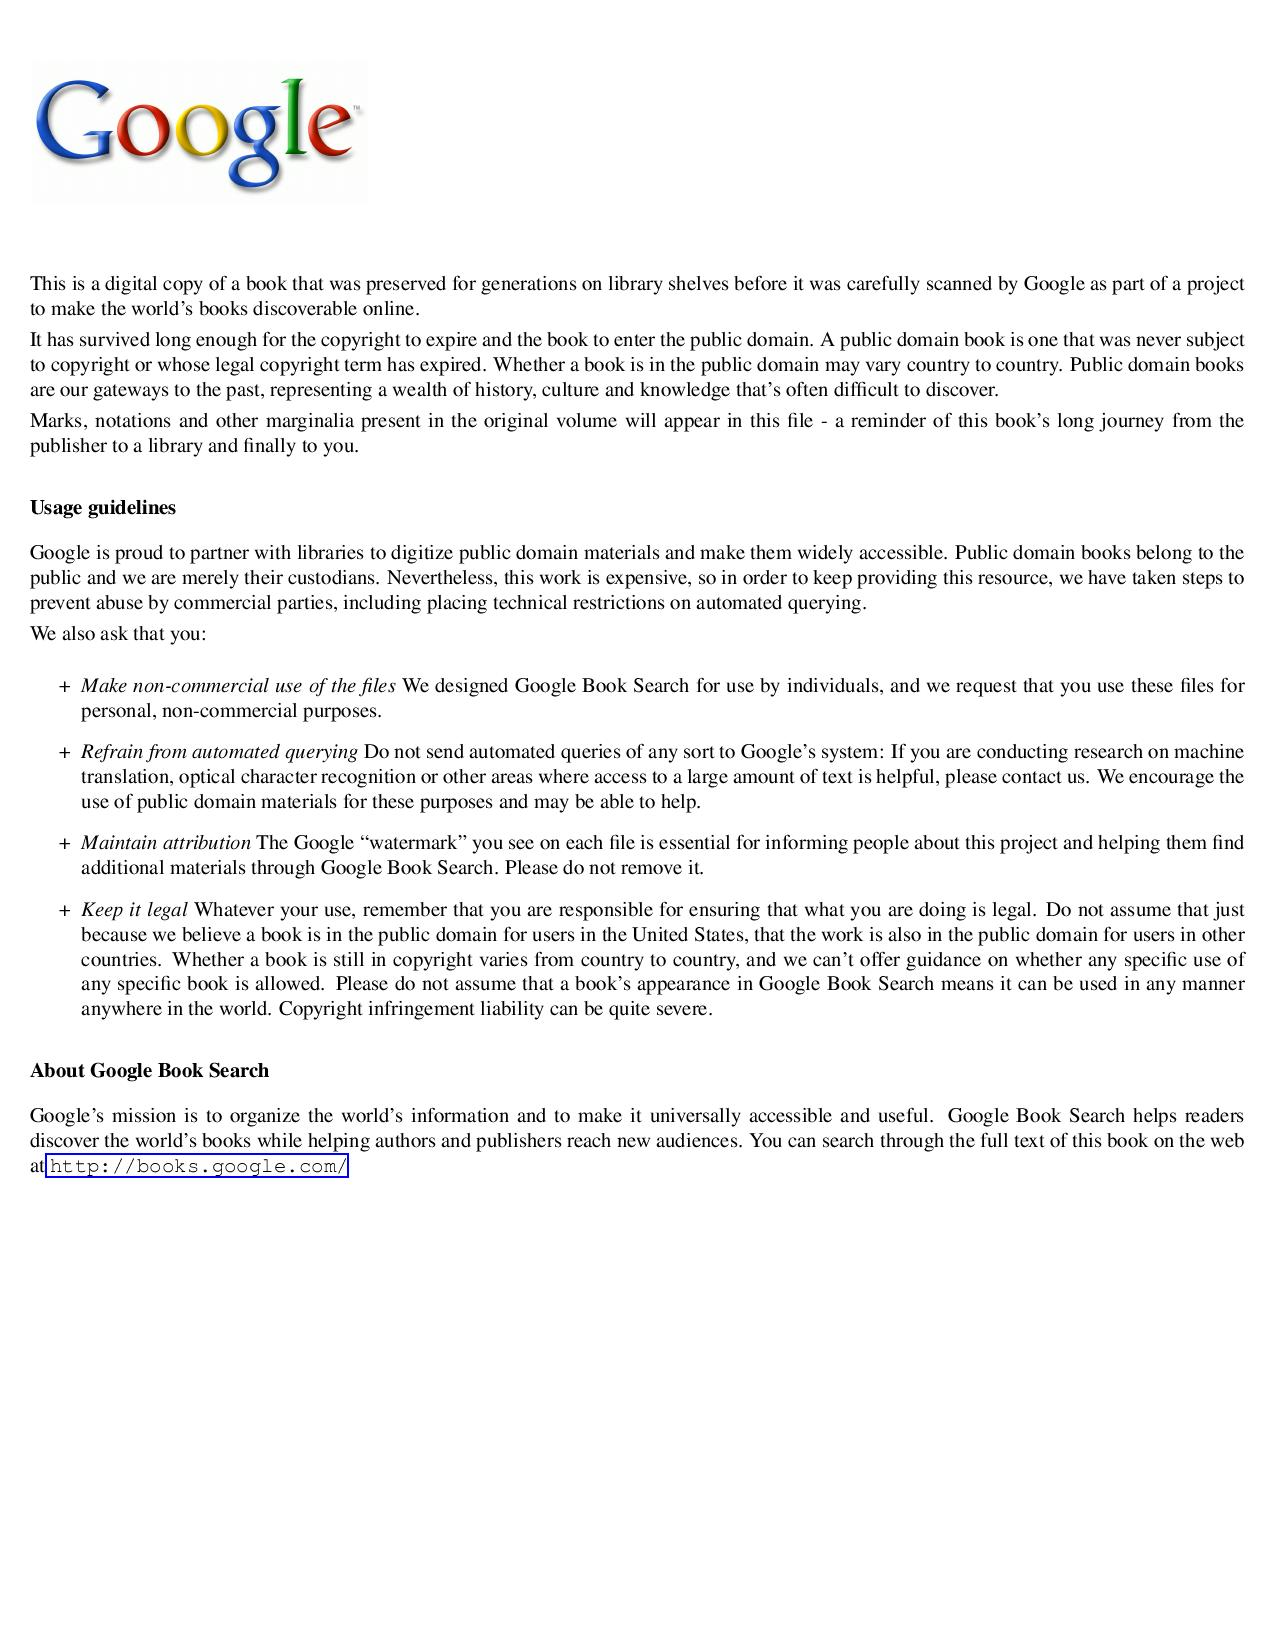 The Gospel according to Saint John: with collations exhibiting all the readings of all the mss by Walter W. Skeat